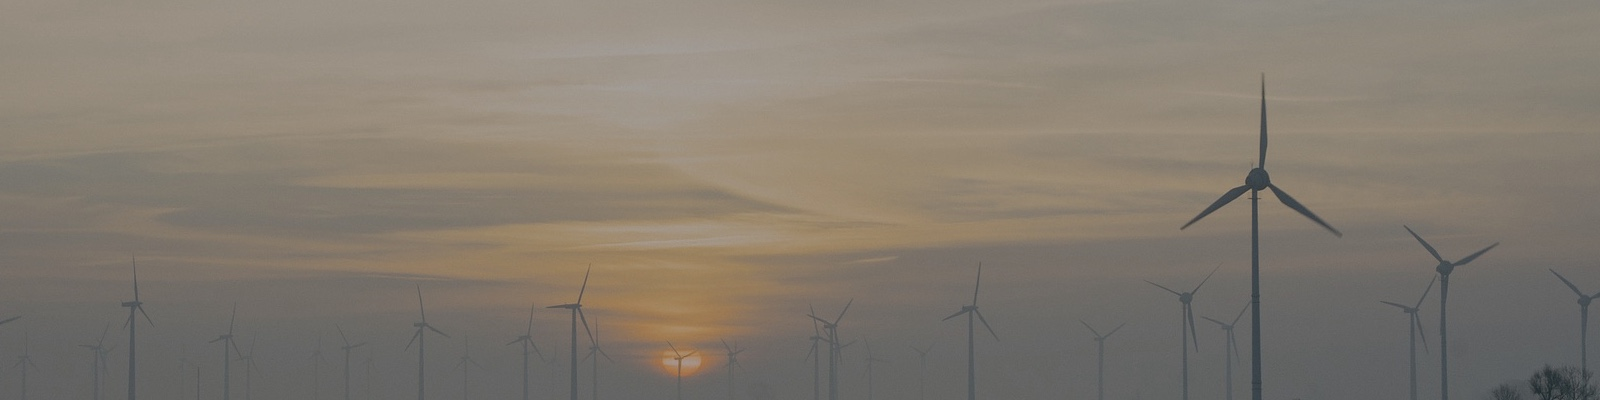 The Use of Alternative Energy in Developing Countries is Growing